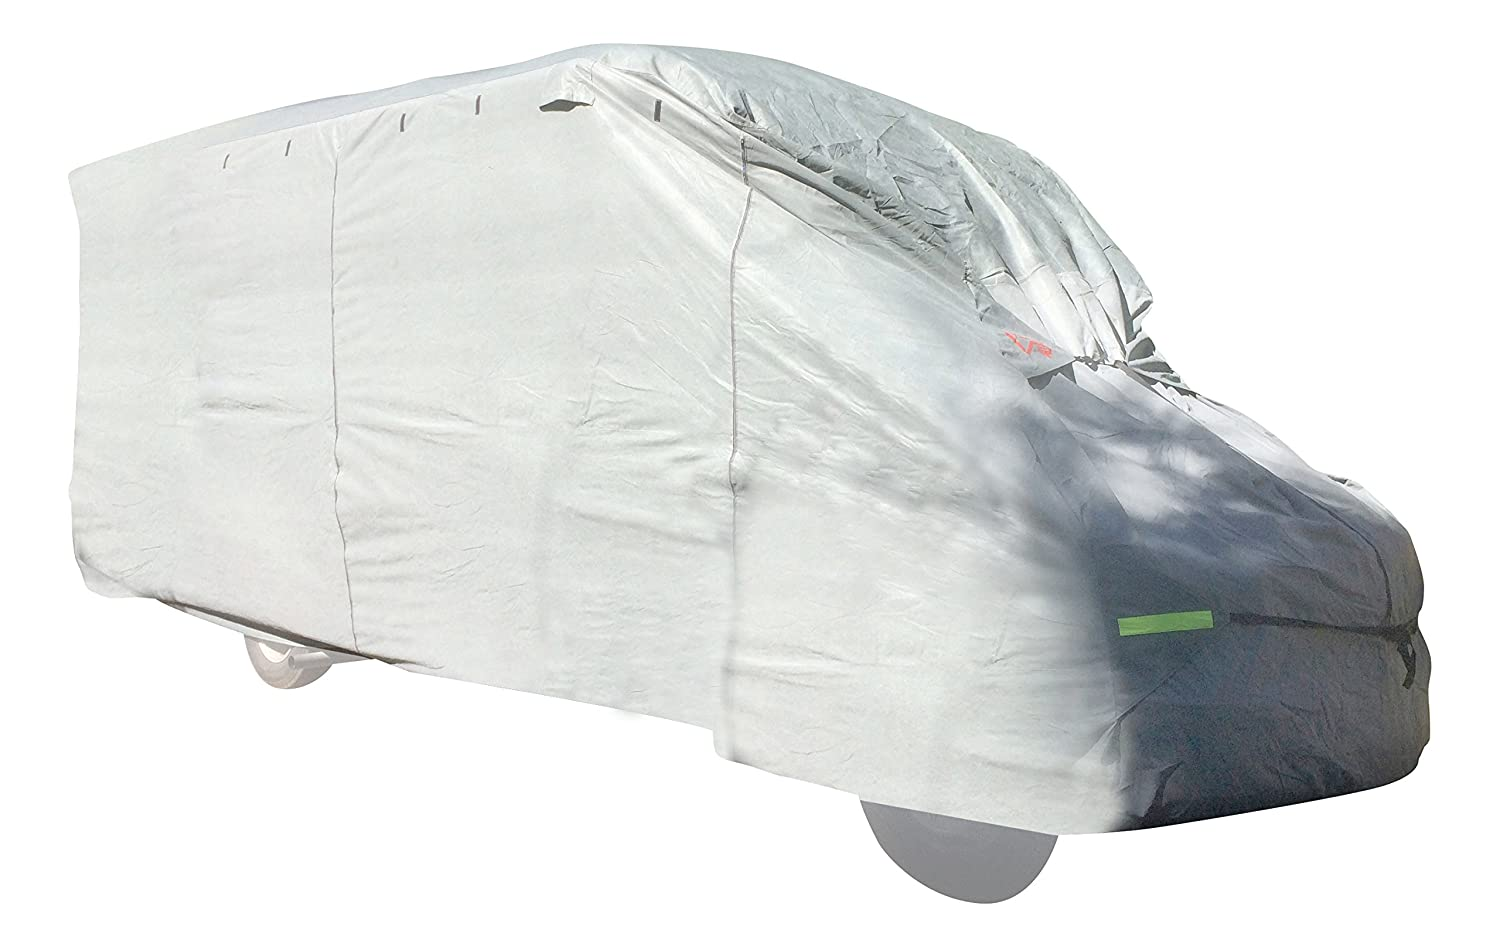 Class B RV Waterproof Cover Light Grey, 20.5 Feet-21.5 Feet